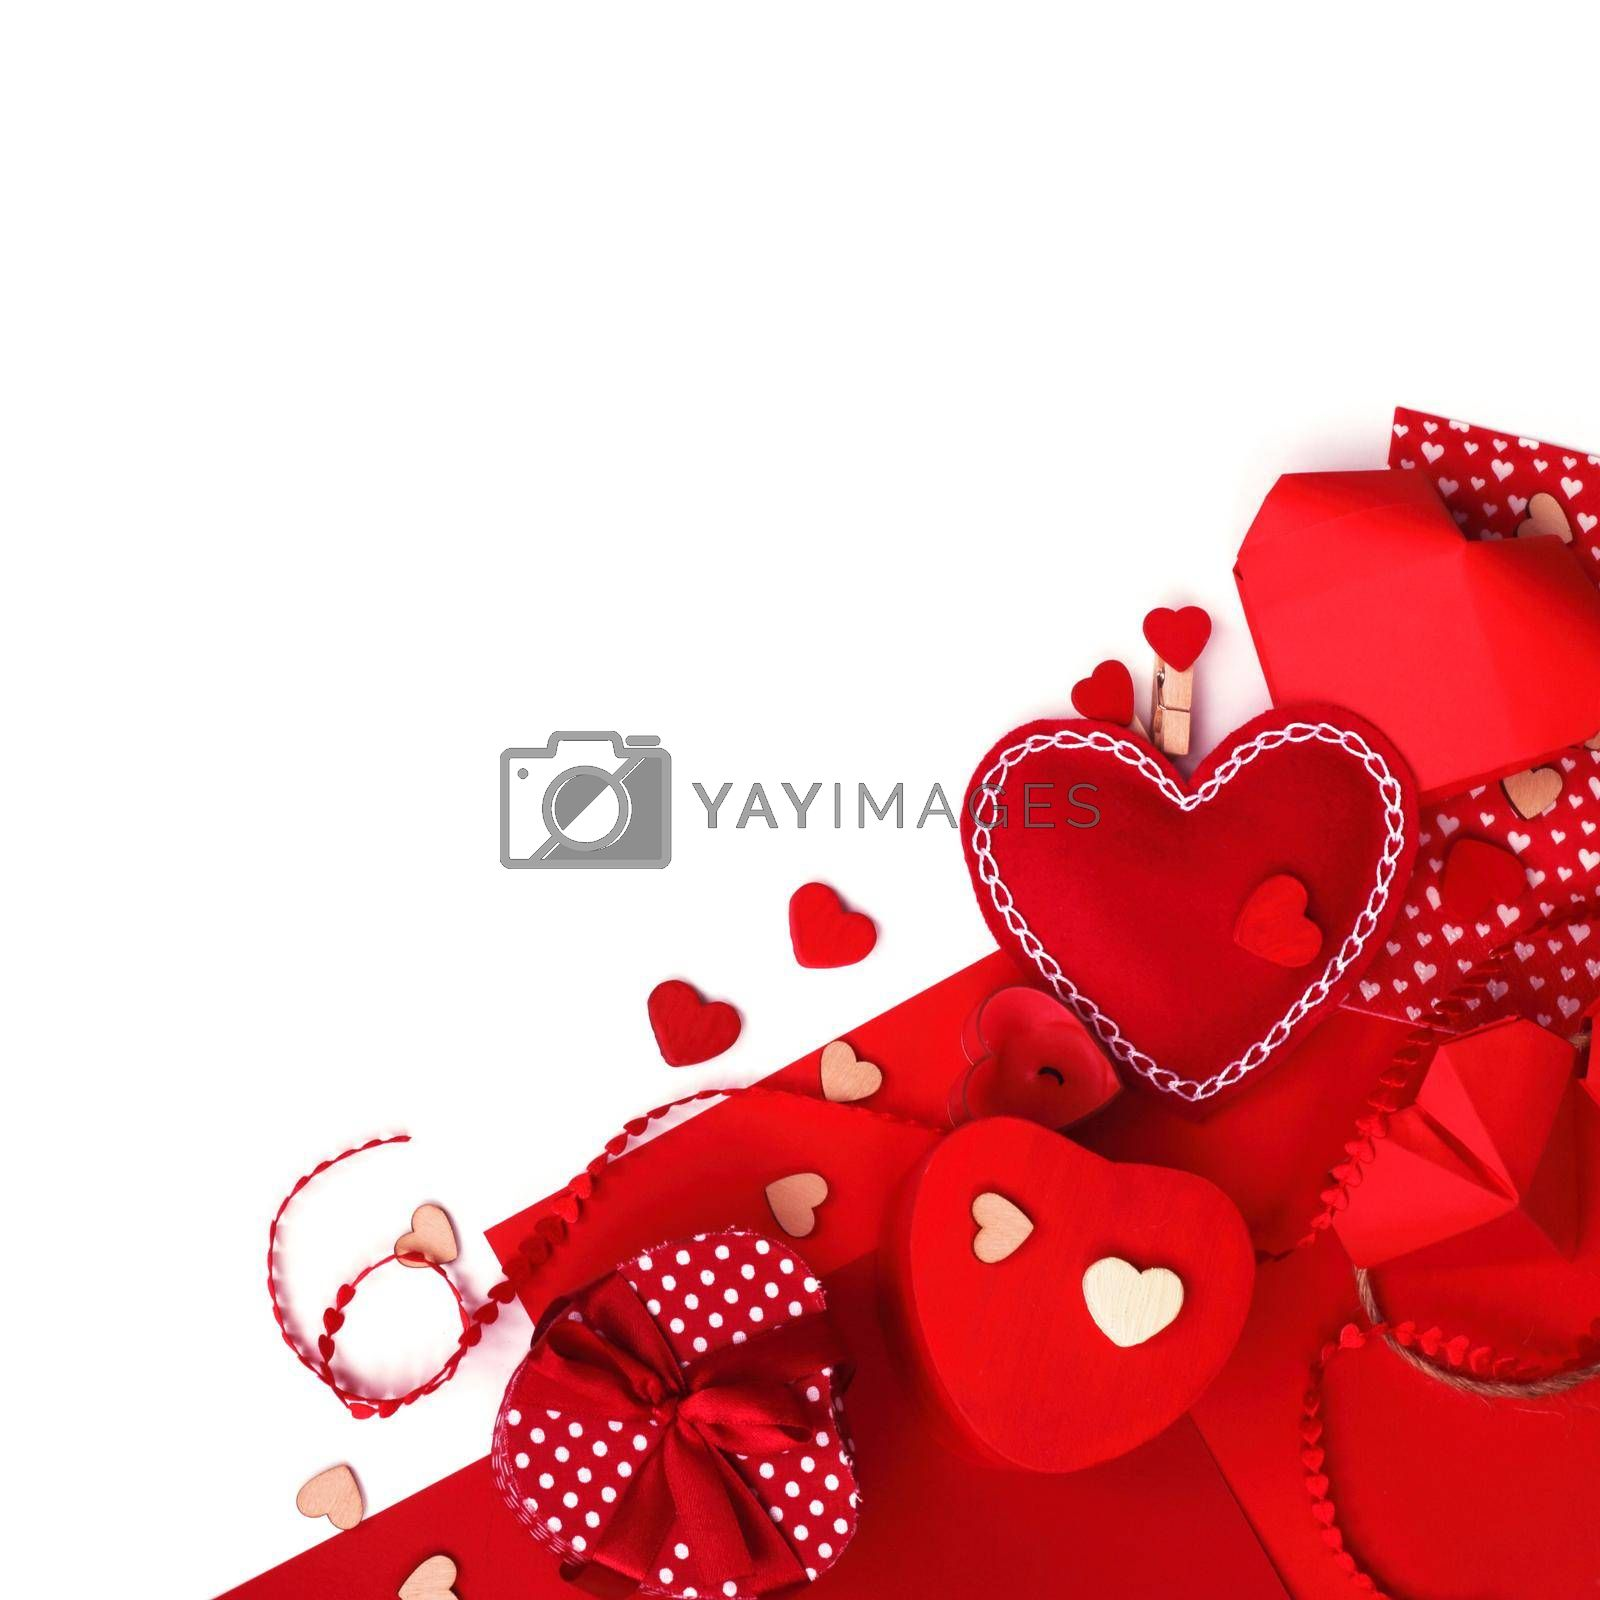 Many valentine day hearts and decor, homemade craft concept, red fabric, paper, gifts and candles, isolated on white background copy space for text